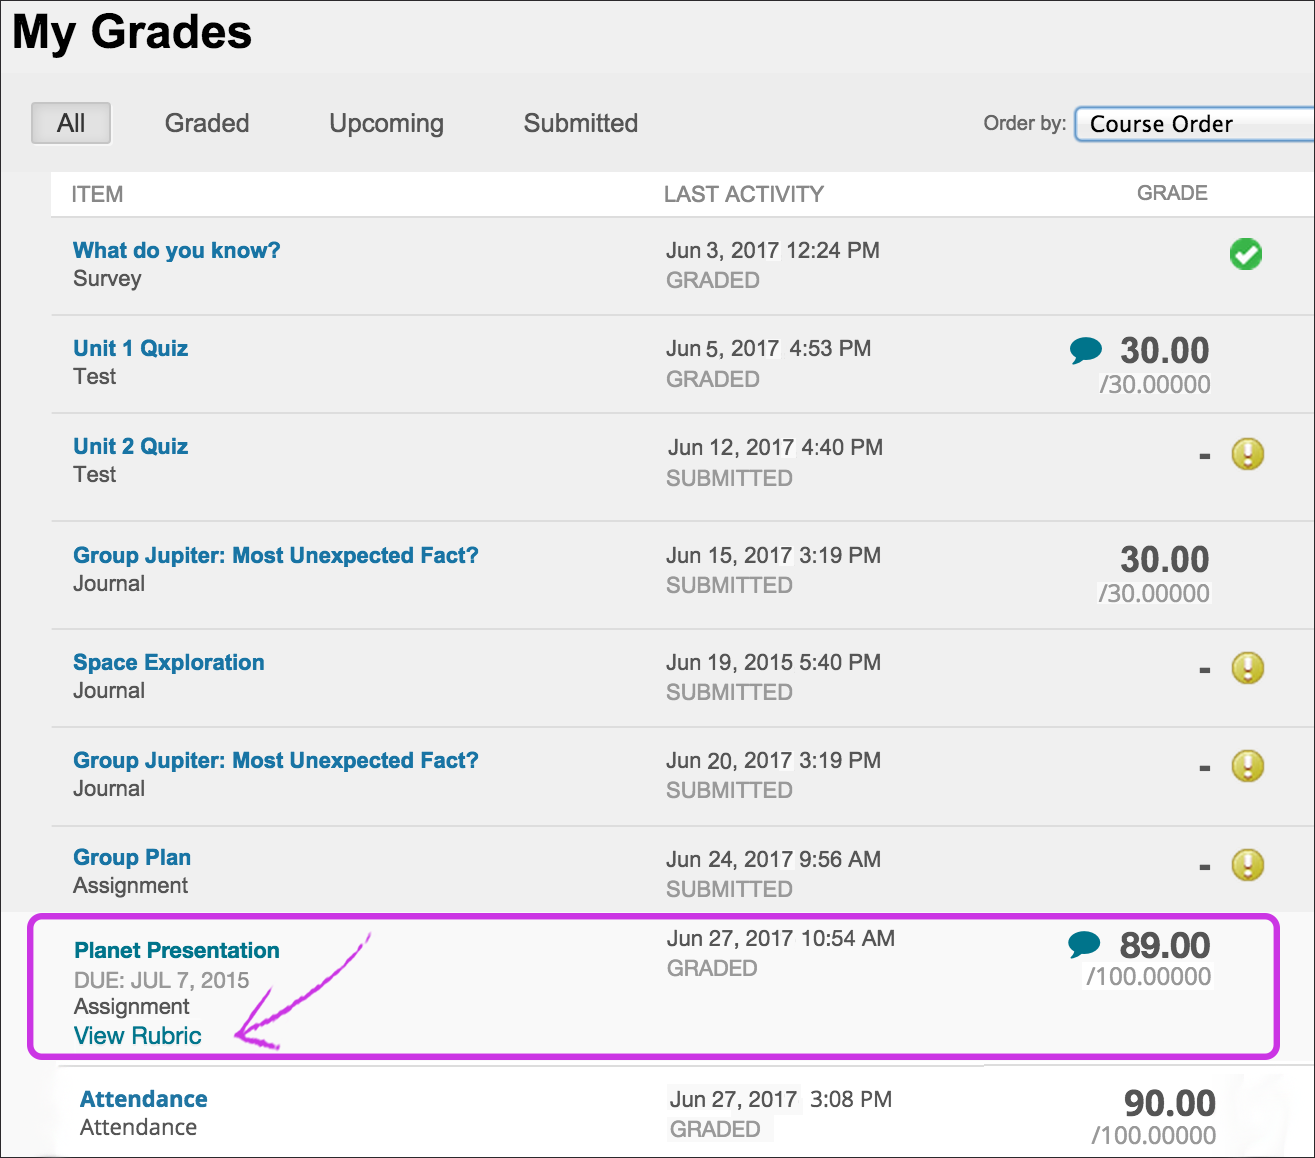 Screenshot of the My Grades page with one assignment circled in pink.